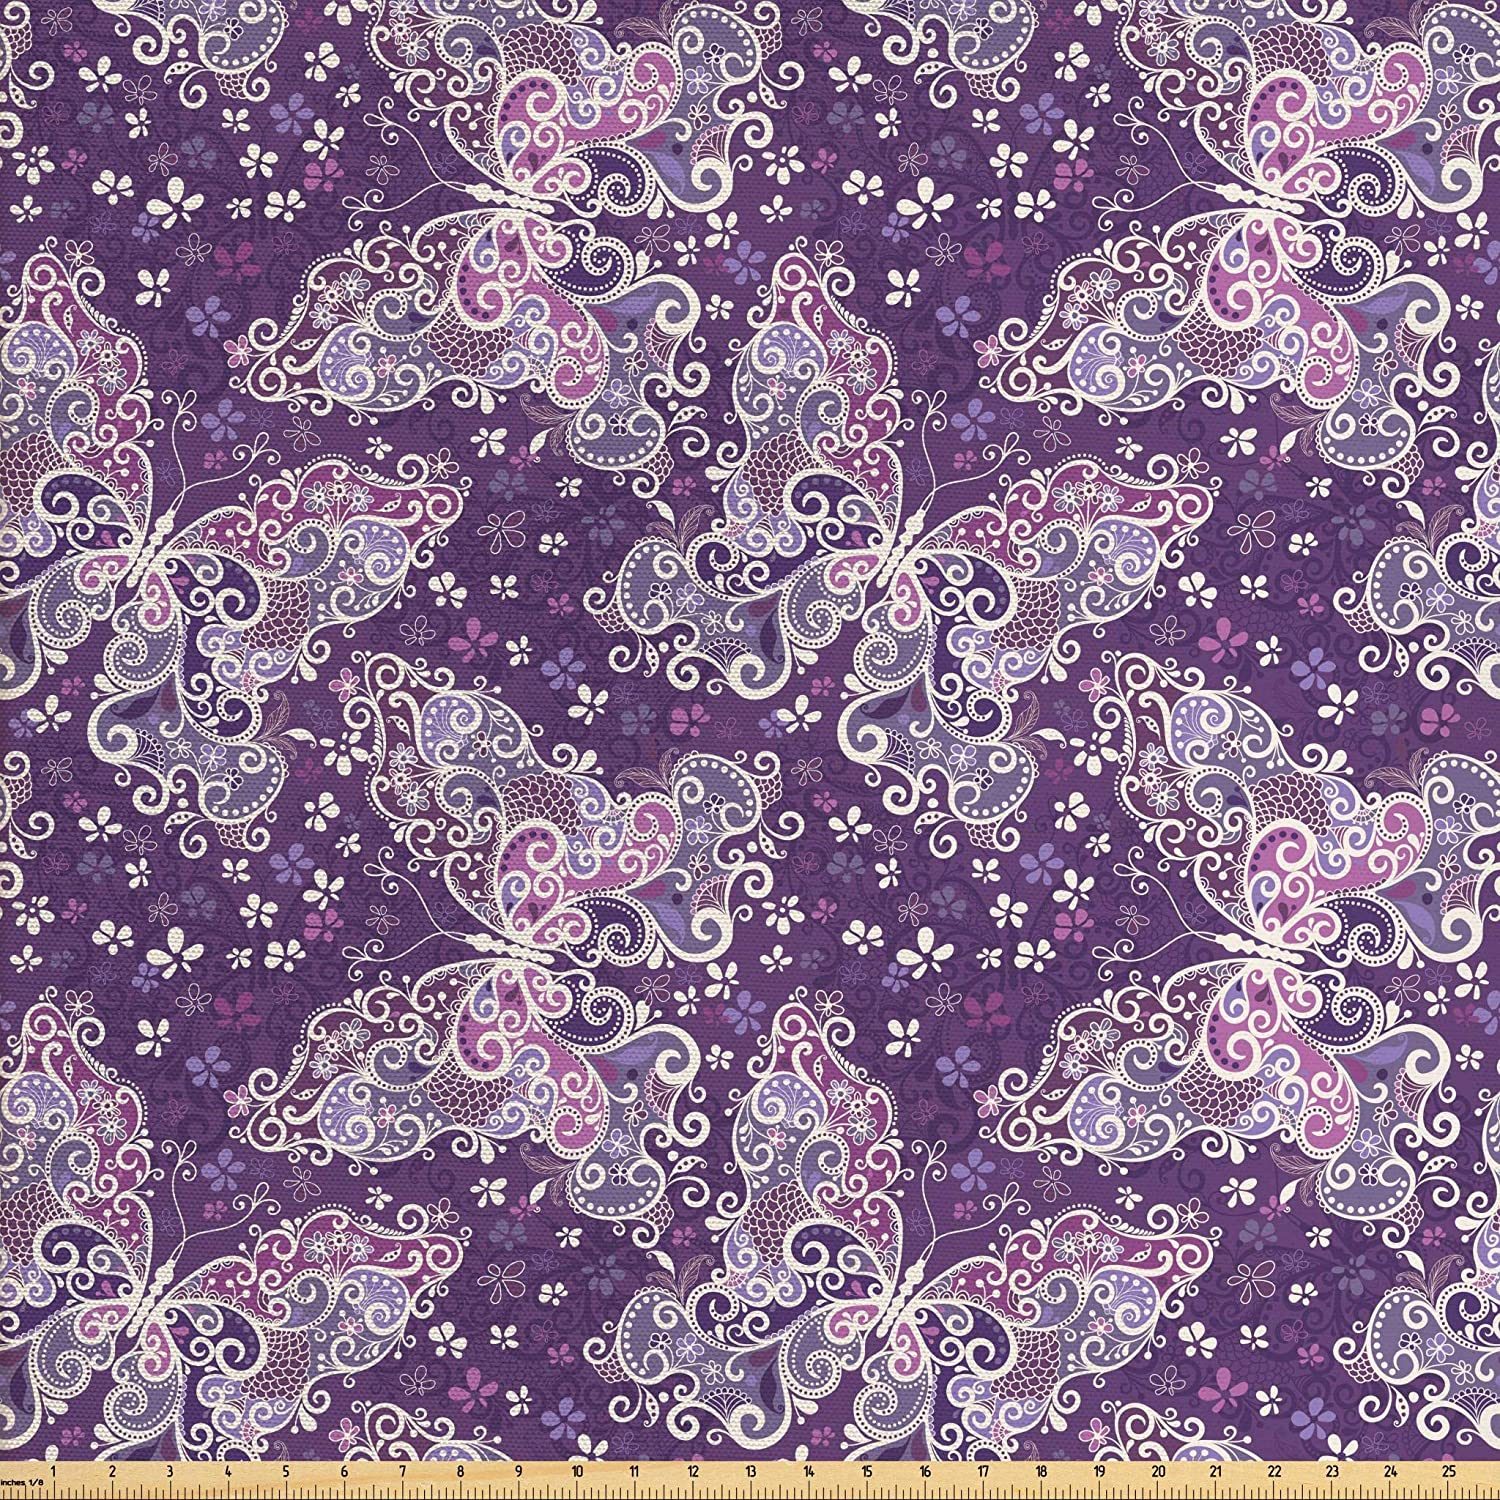 Lunarable Floral Fabric by The Yard, Ornate Oriental Big Butterfly with Retro Elements, Decorative Fabric for Upholstery and Home Accents, 1 Yard, Purple White